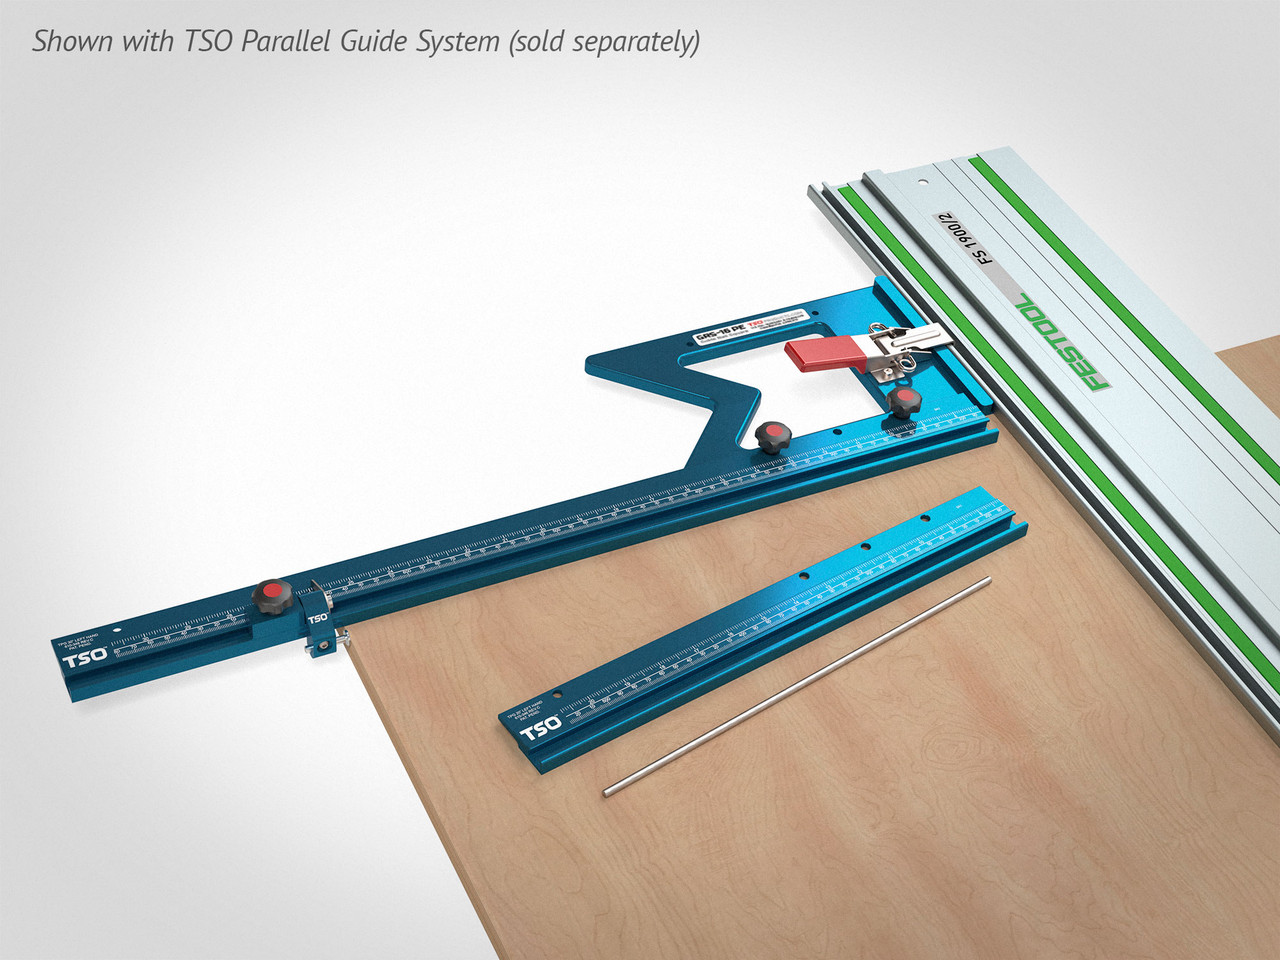 Connect the GRS-16 and GRS-16 PE to the TSO Parallel Guide System (sold separately) and experience fast, accurate, repeatable, square and parallel cuts!